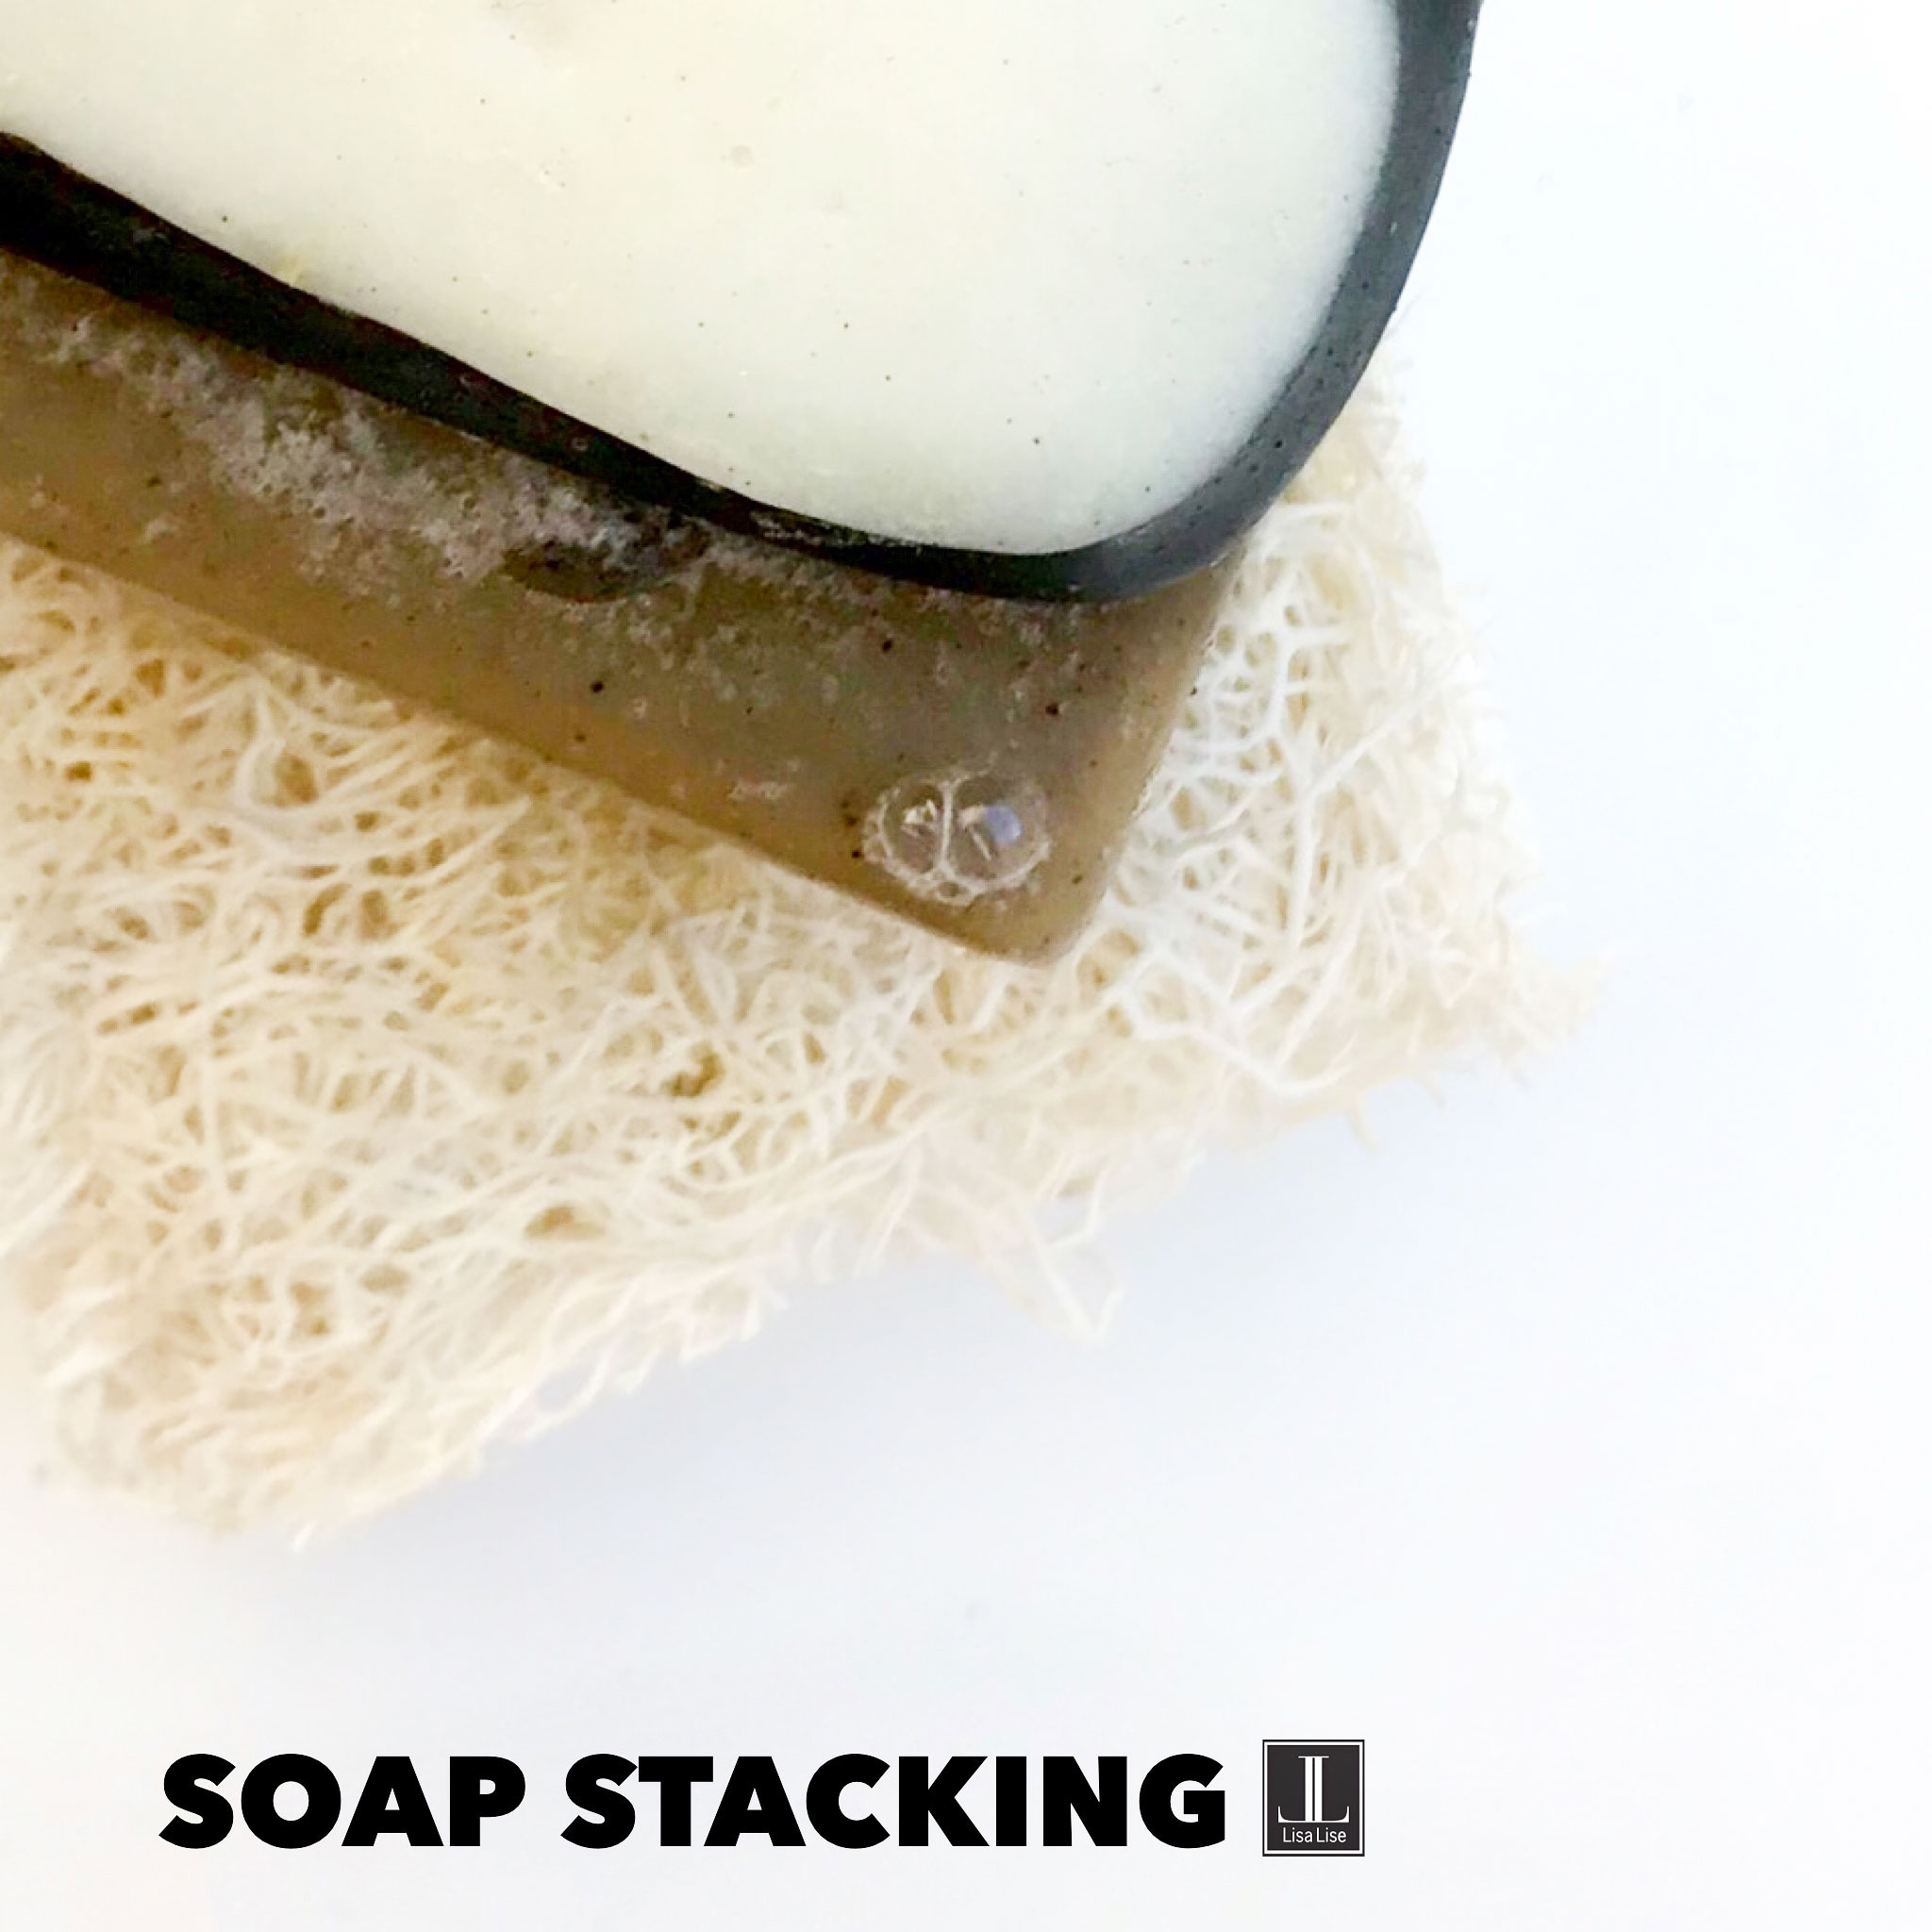 LisaLisesoapstacking.jpg